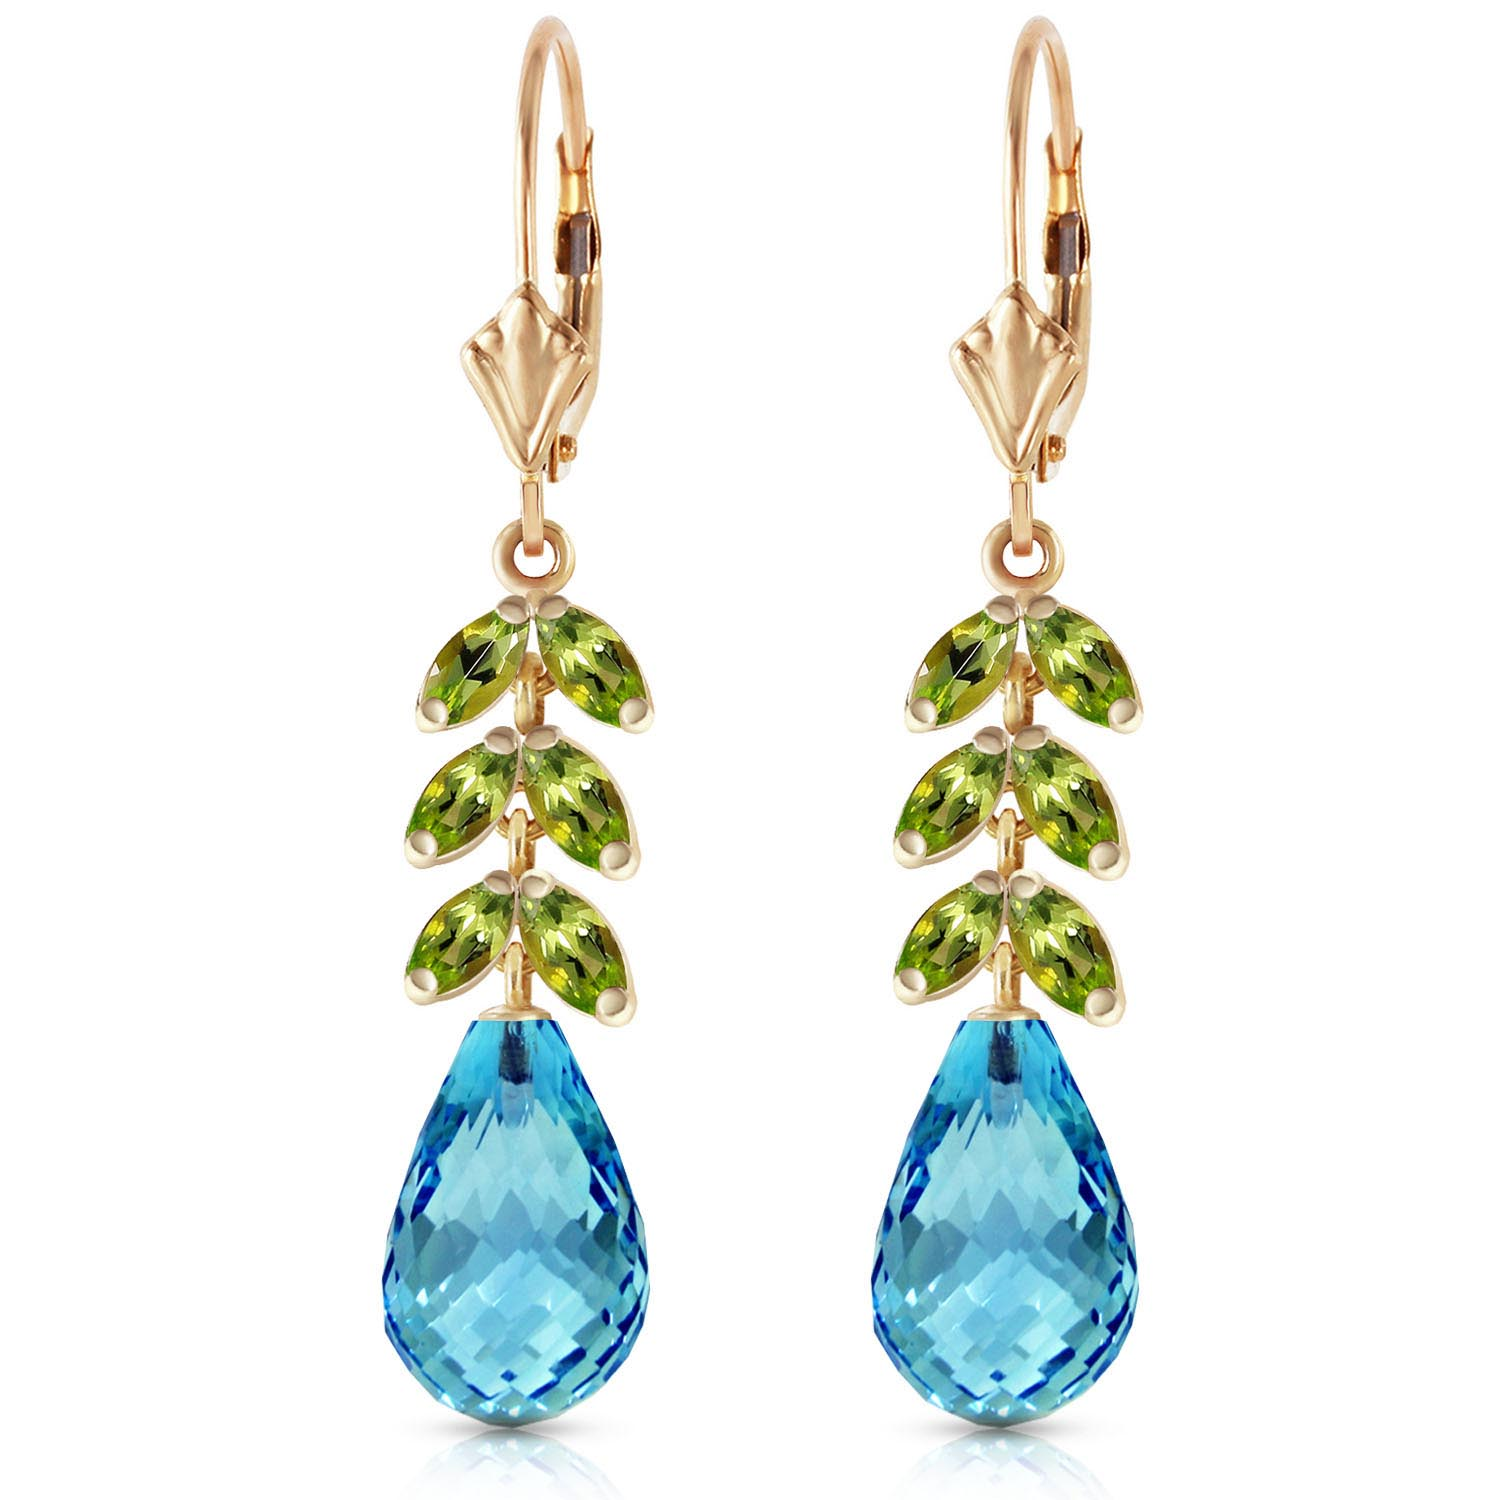 Blue Topaz and Peridot Drop Earrings 11.2ctw in 9ct Gold